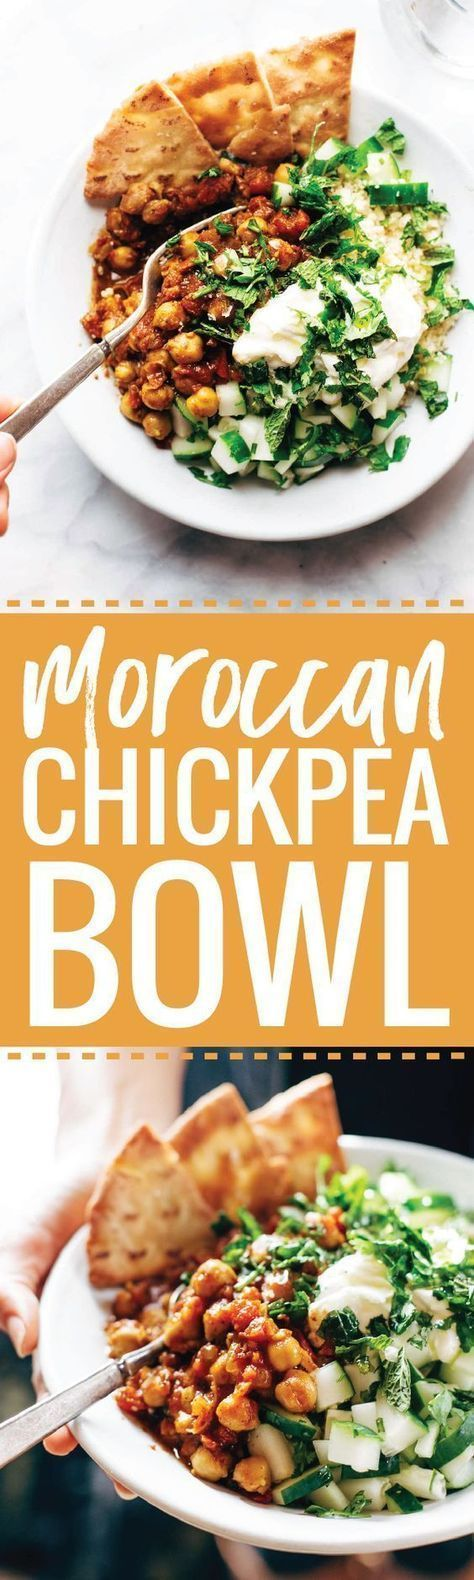 Moroccan-Spiced Chickpea Glow Bowl